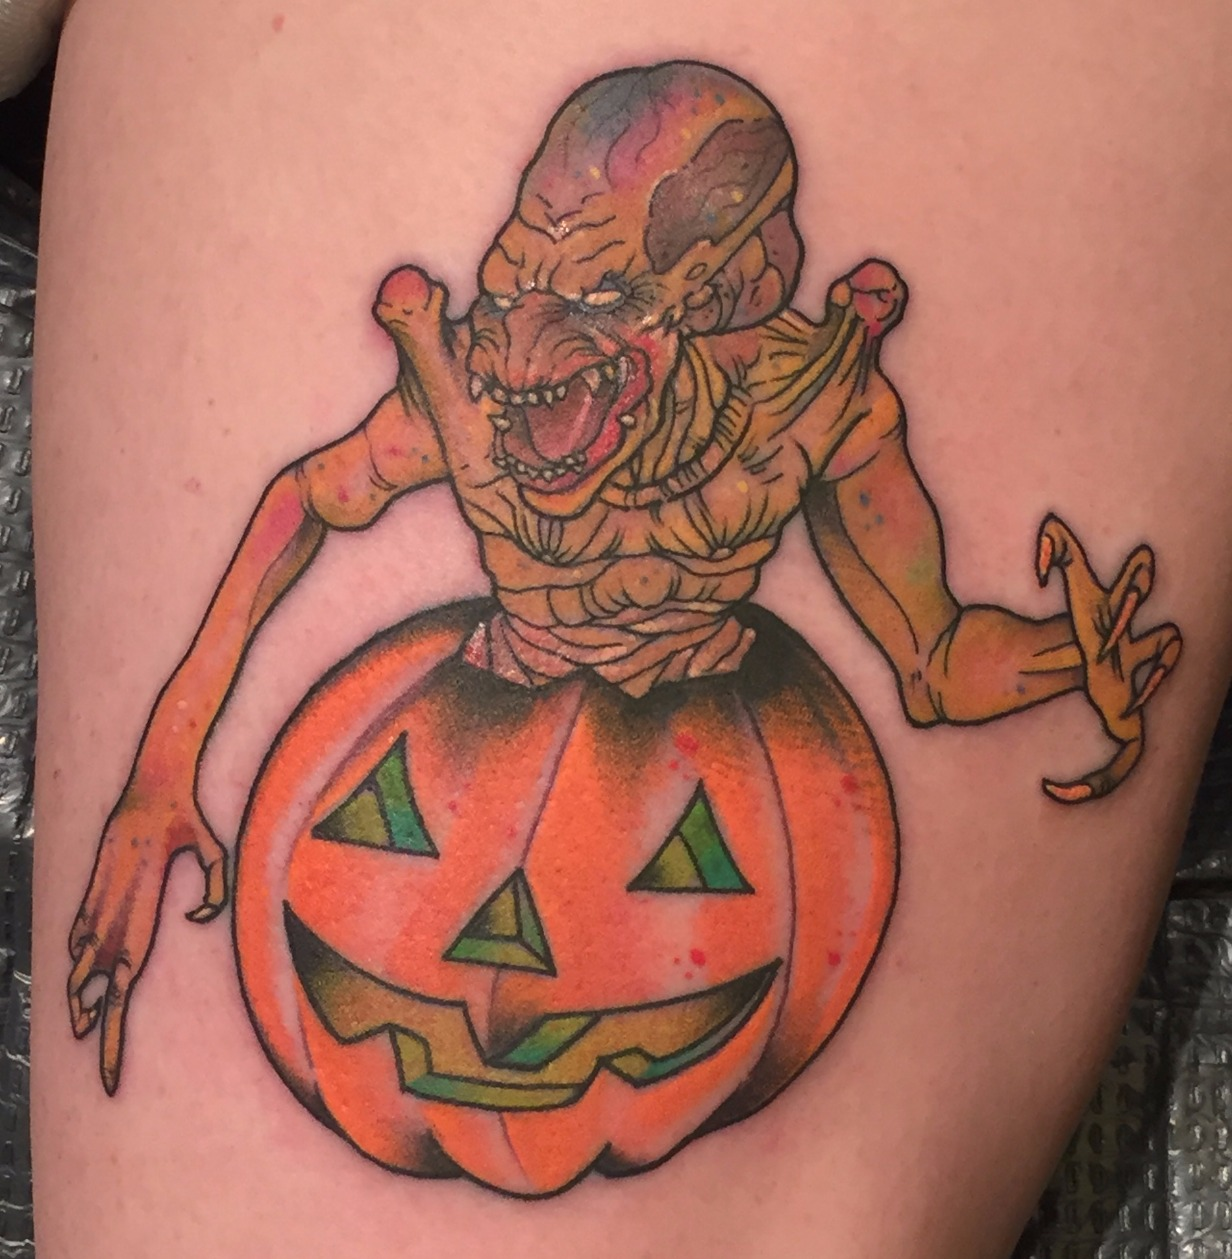 Pumpkinhead in Pumpkin